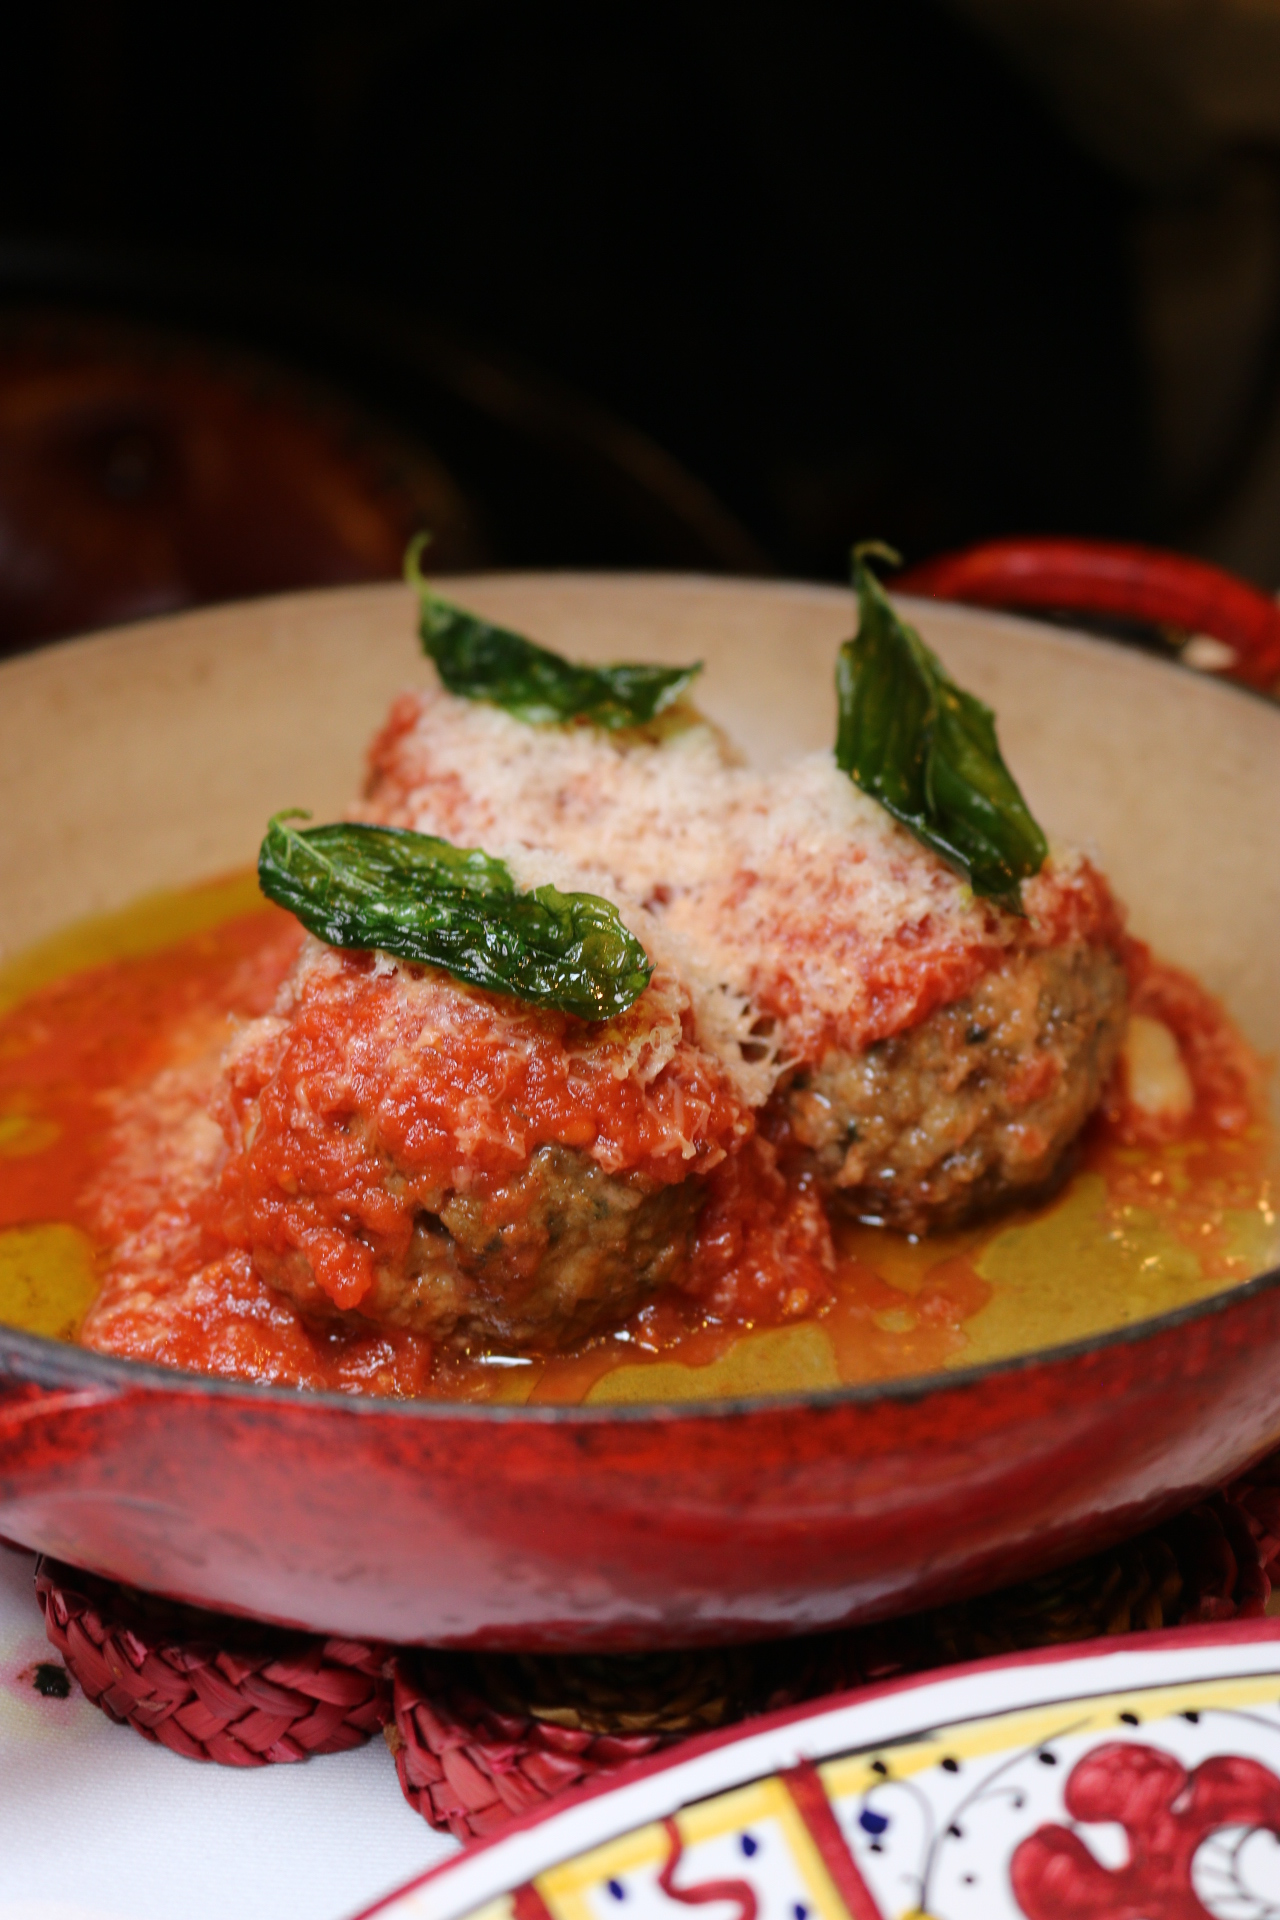 Carbone nyc meatballs